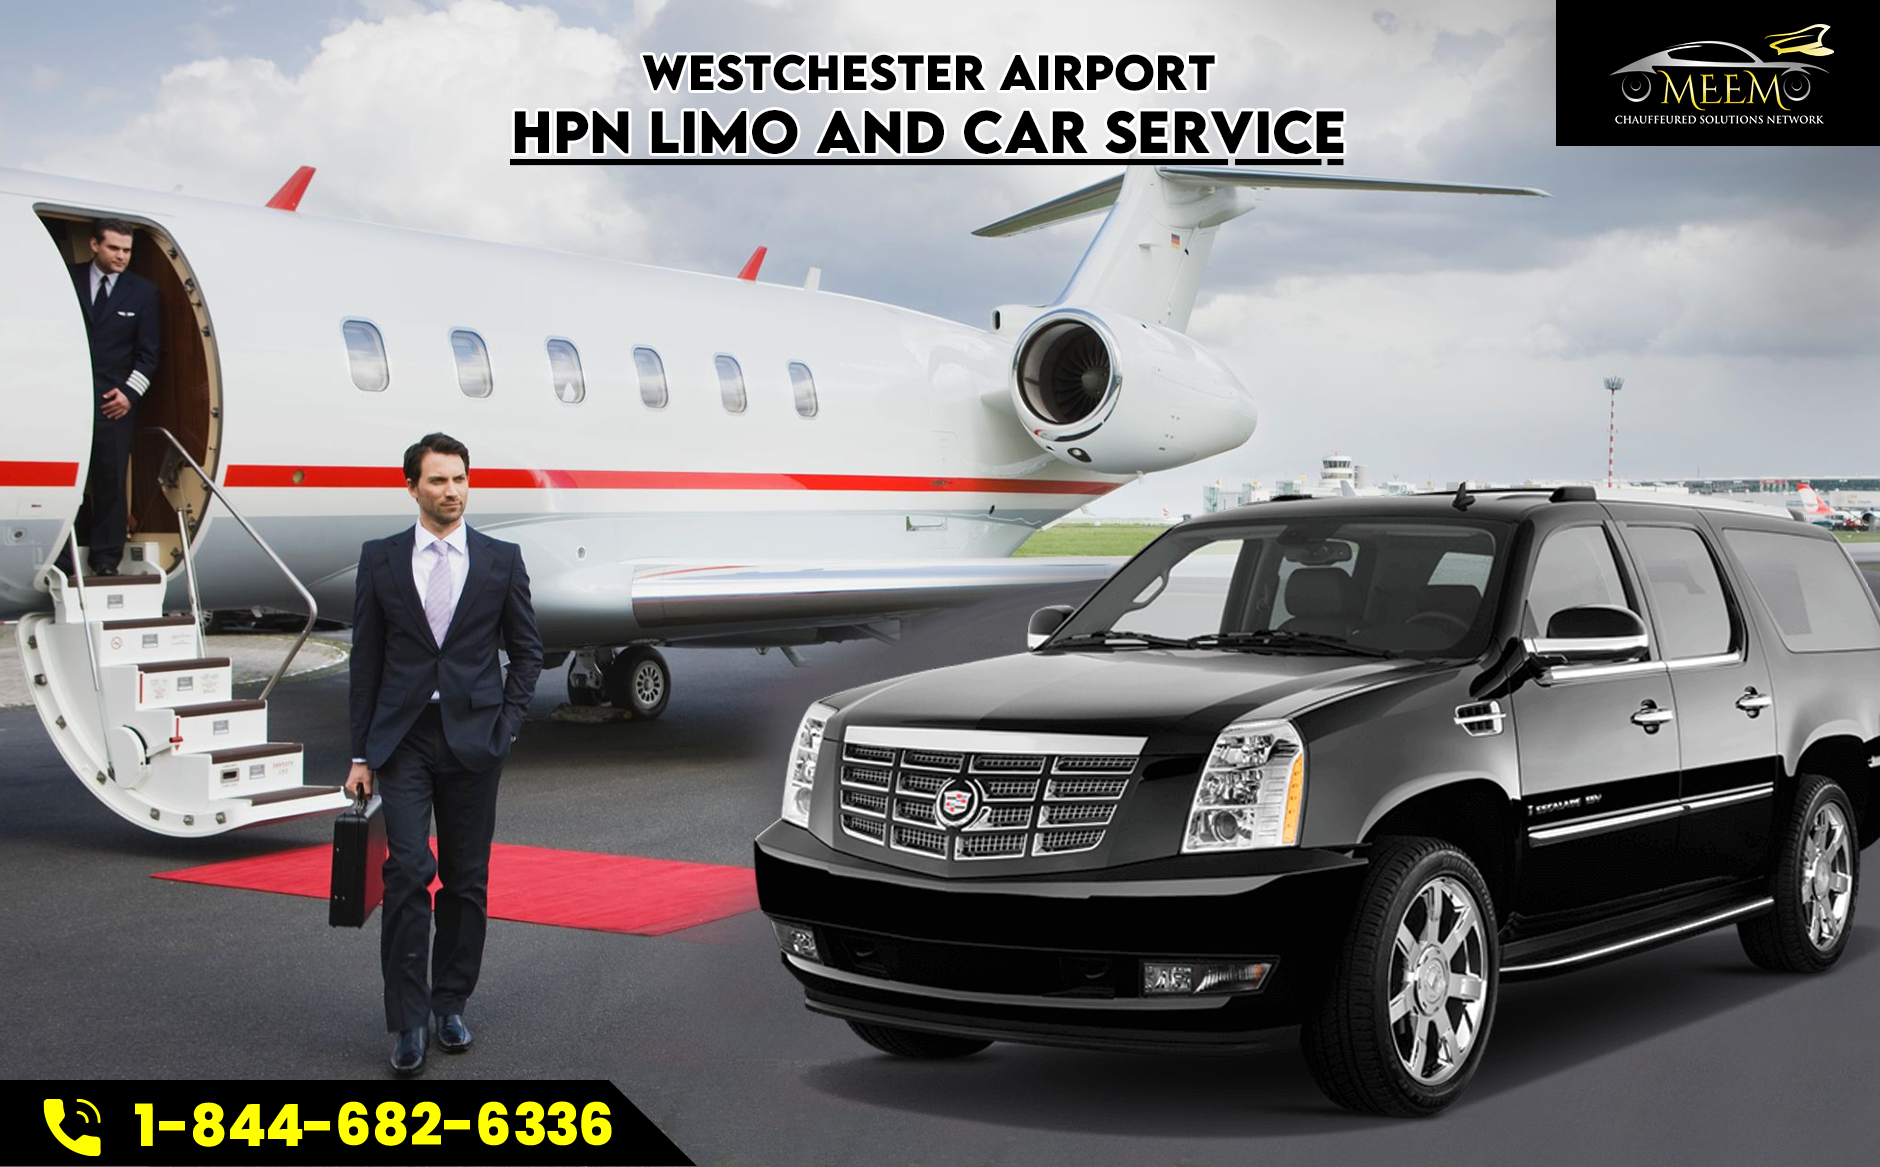 HPN Limo and Car Service